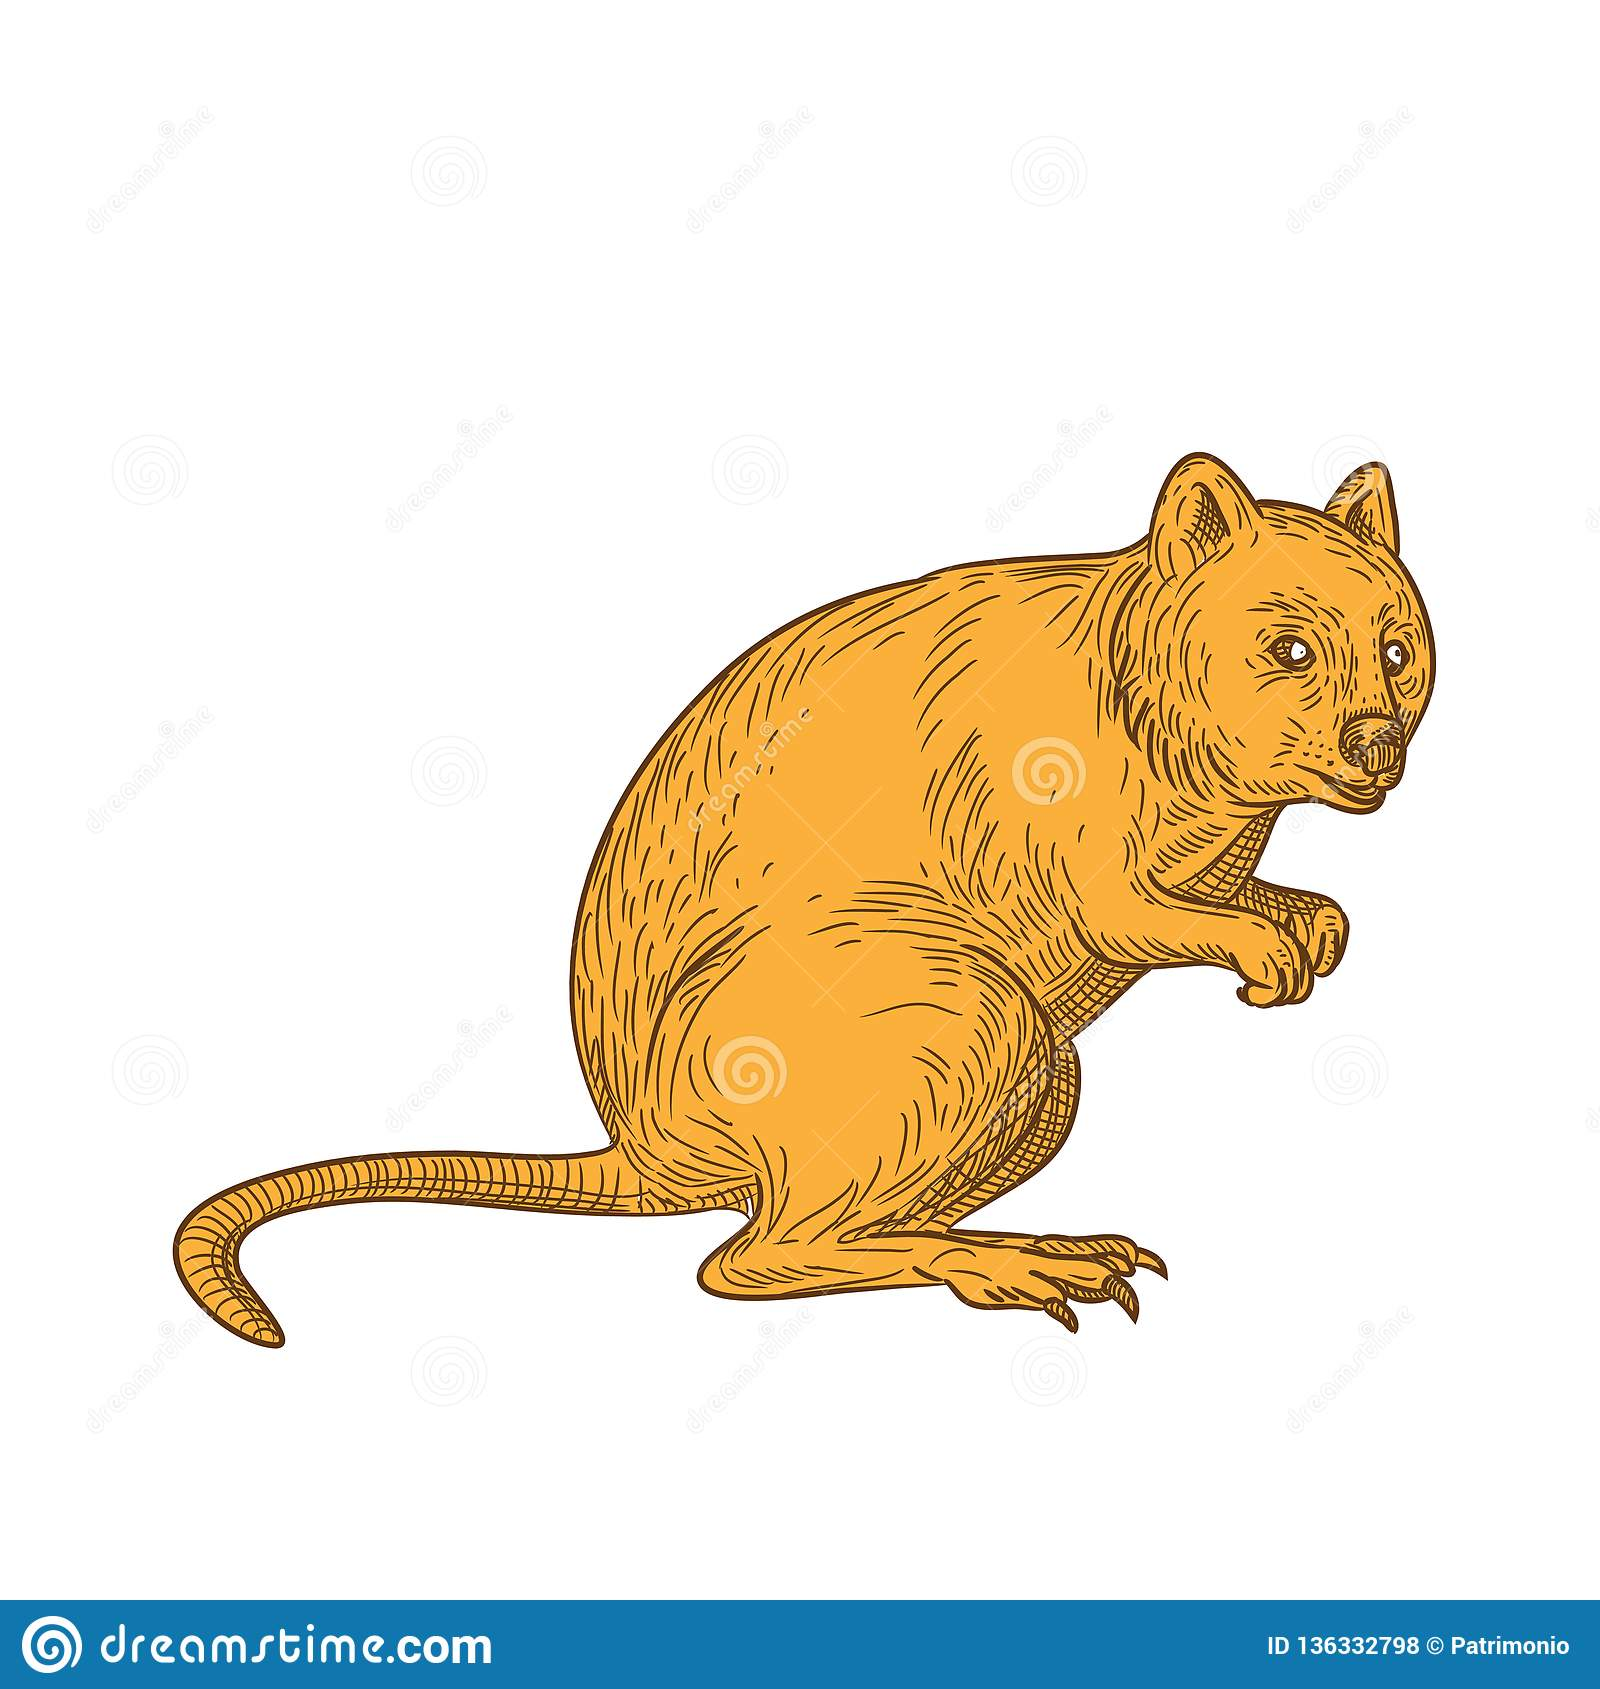 Quokka Drawing Color Stock Vector. Illustration Of Hand